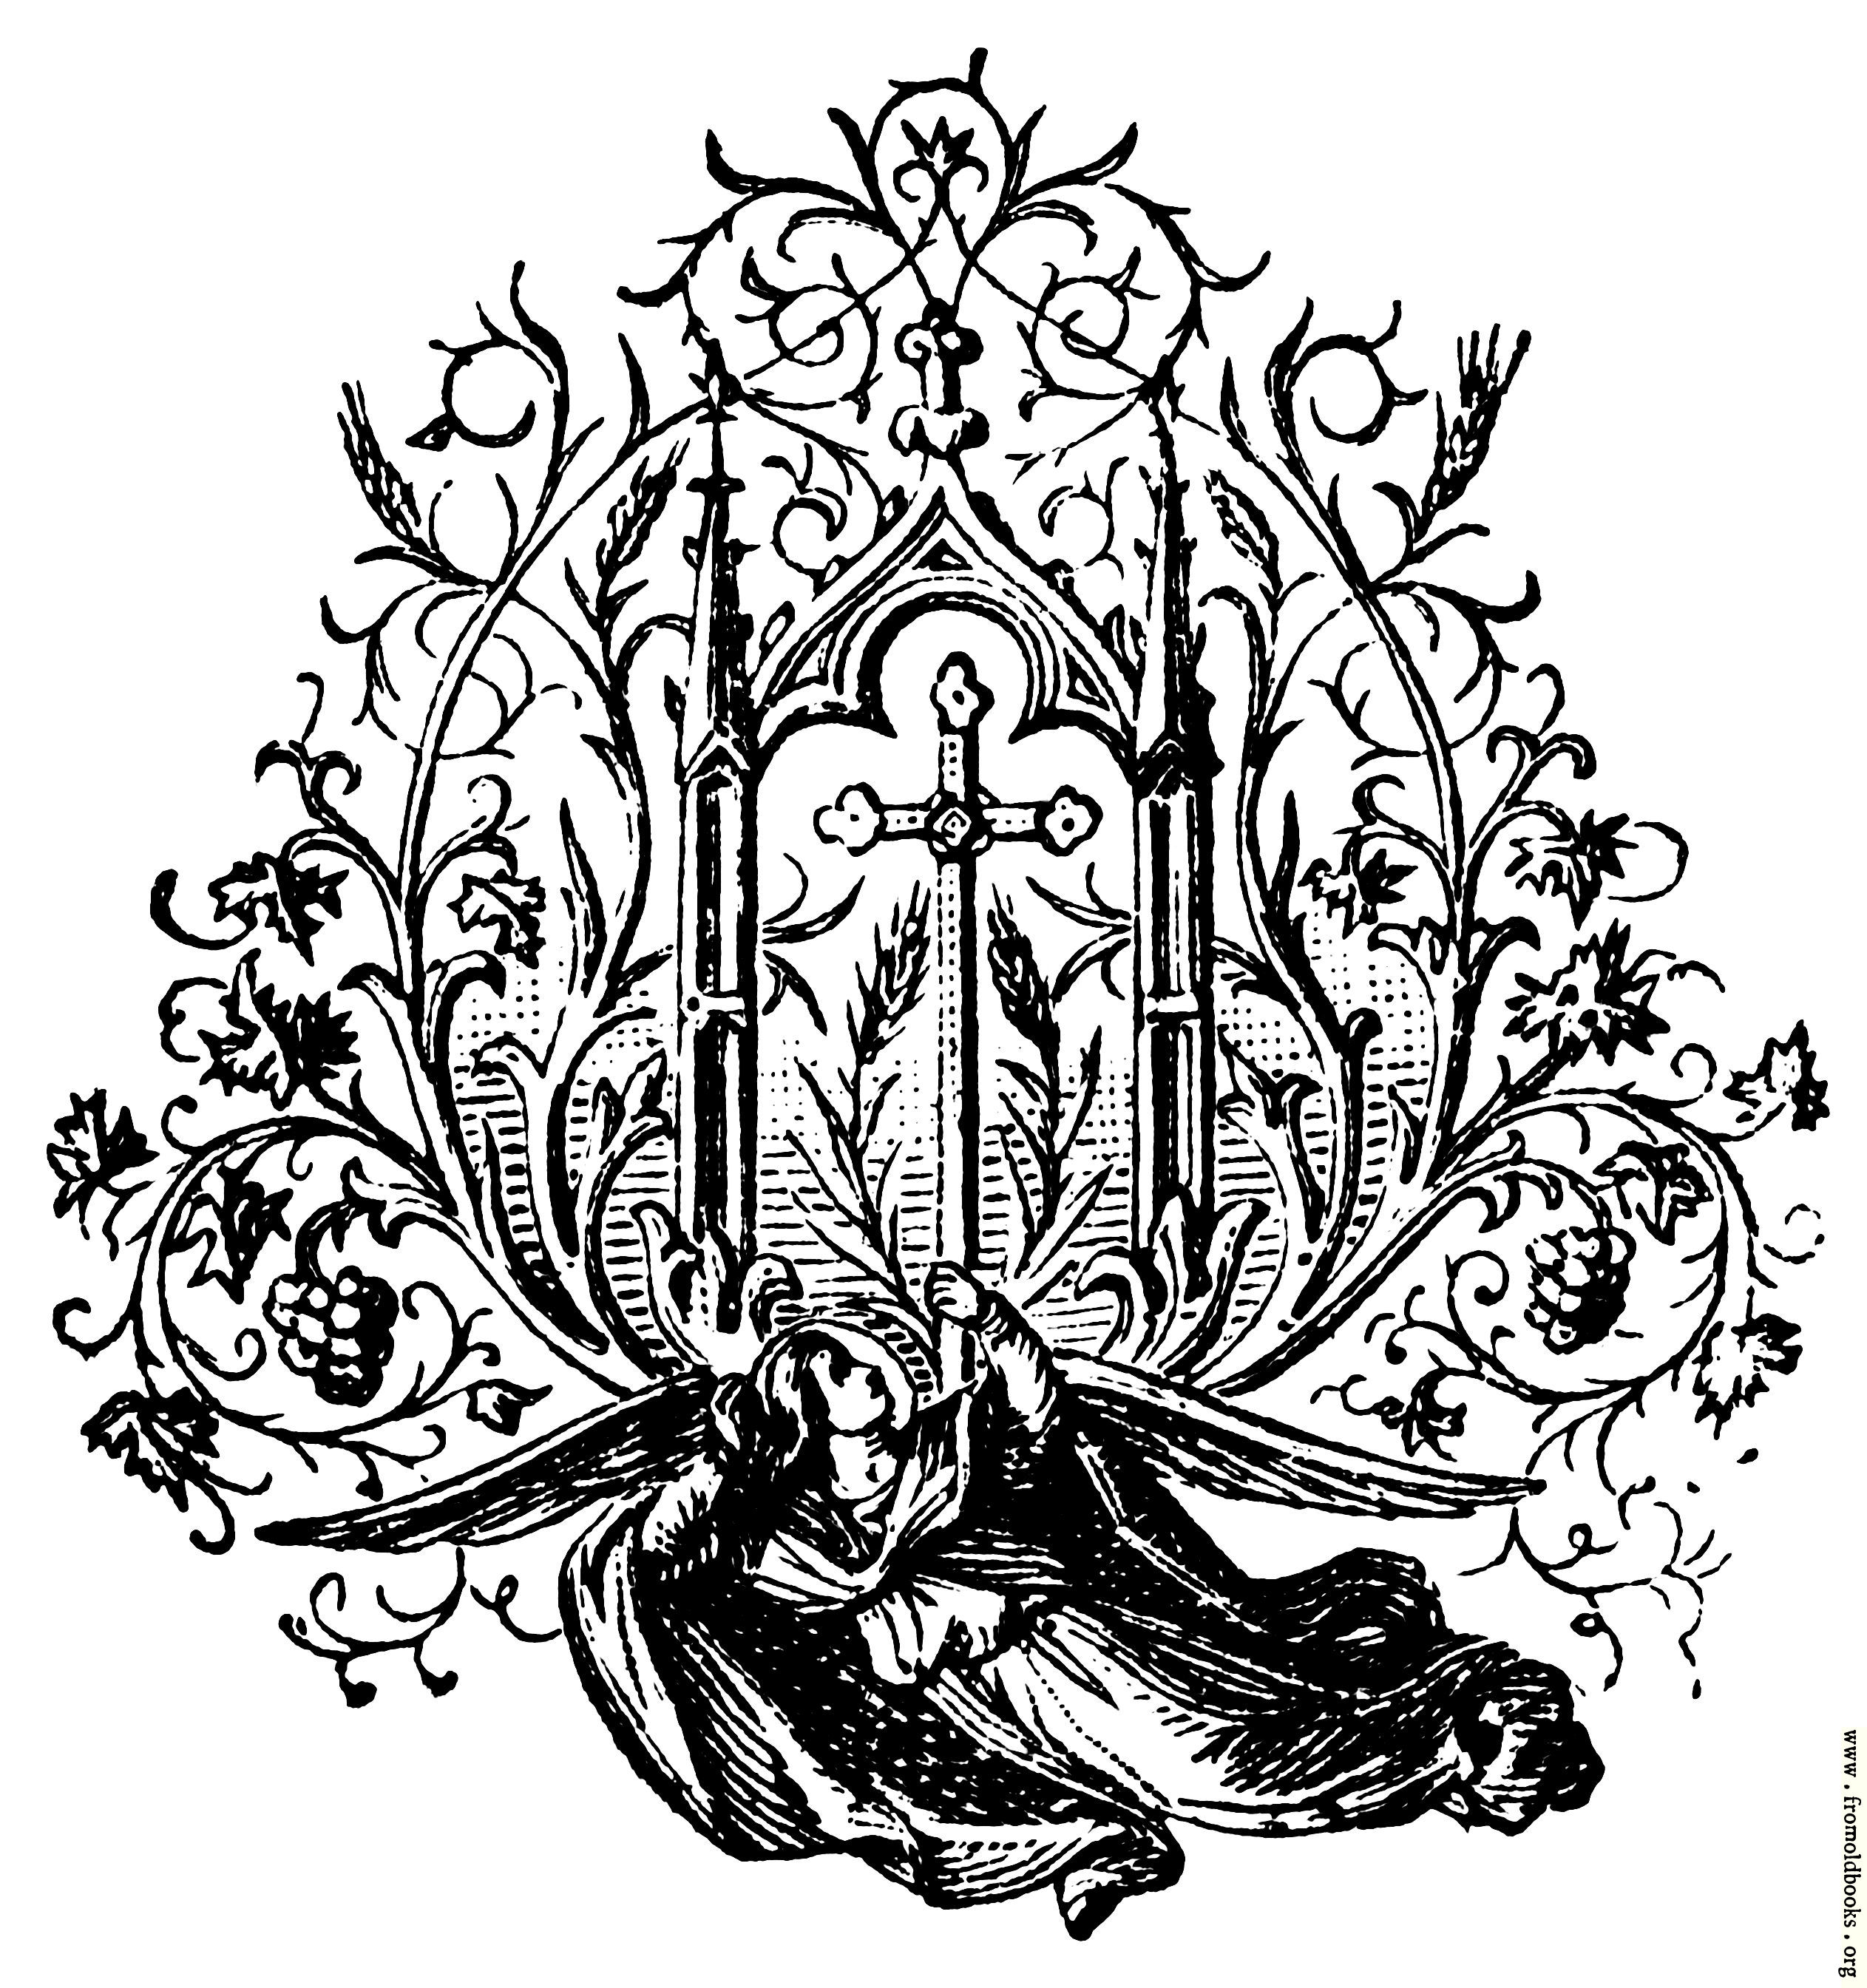 [Picture: Chapter tailpiece, winged angel holding cross]